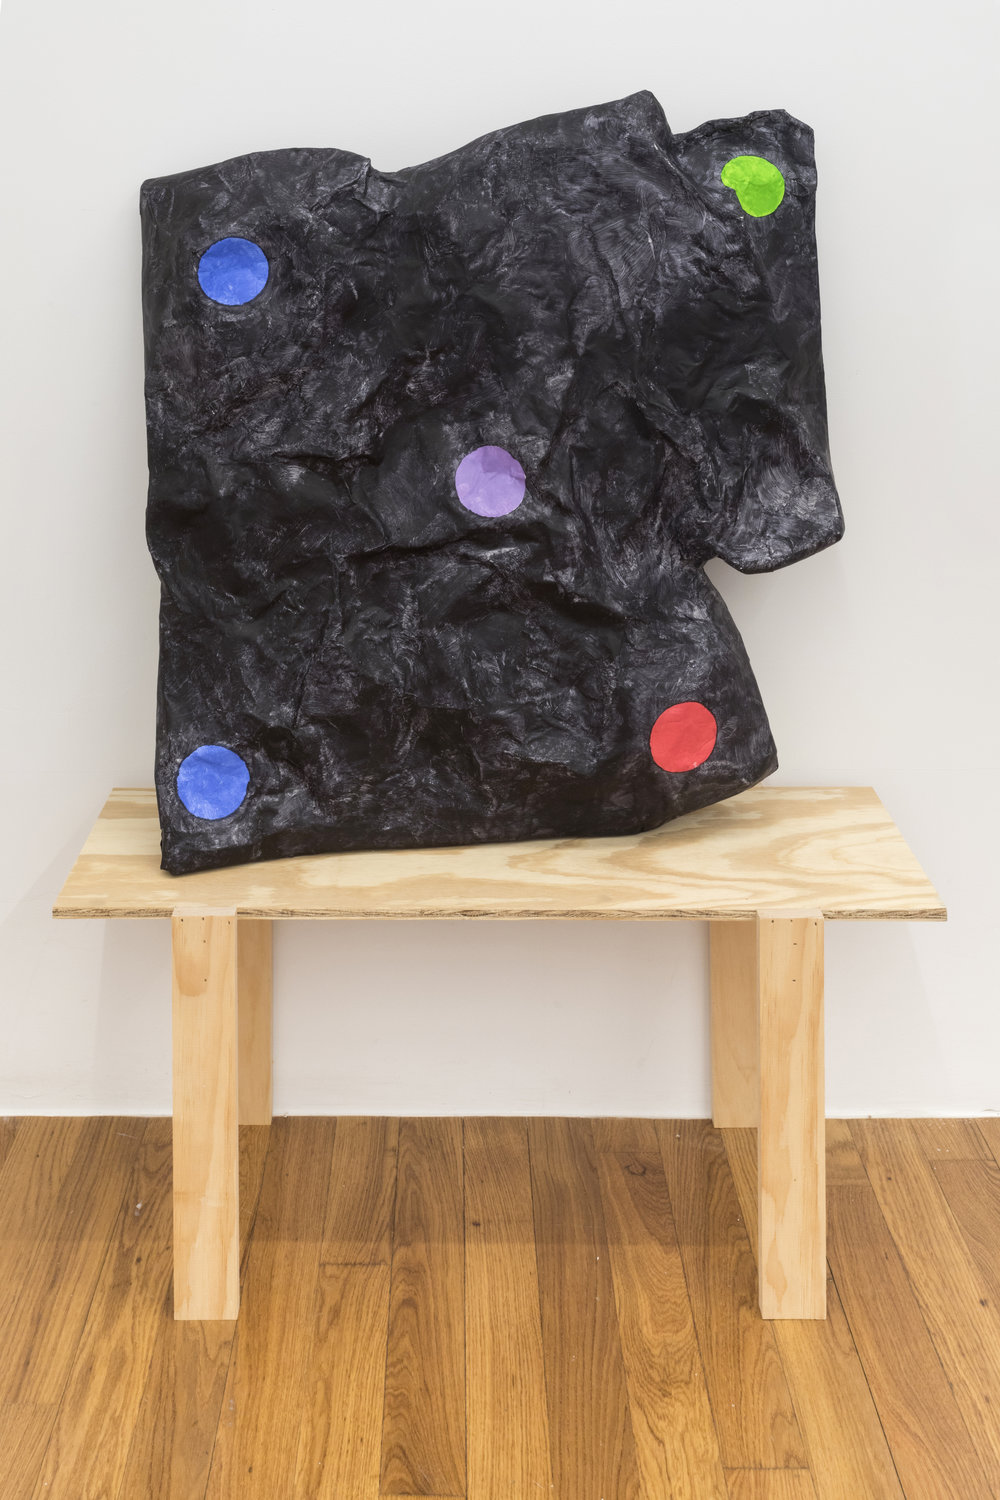 Stacy Fisher  Plumbing/Heating  2018 Newspaper, craft paper, acrylic, glue, and wood 50 x 36 x 13.5 inches